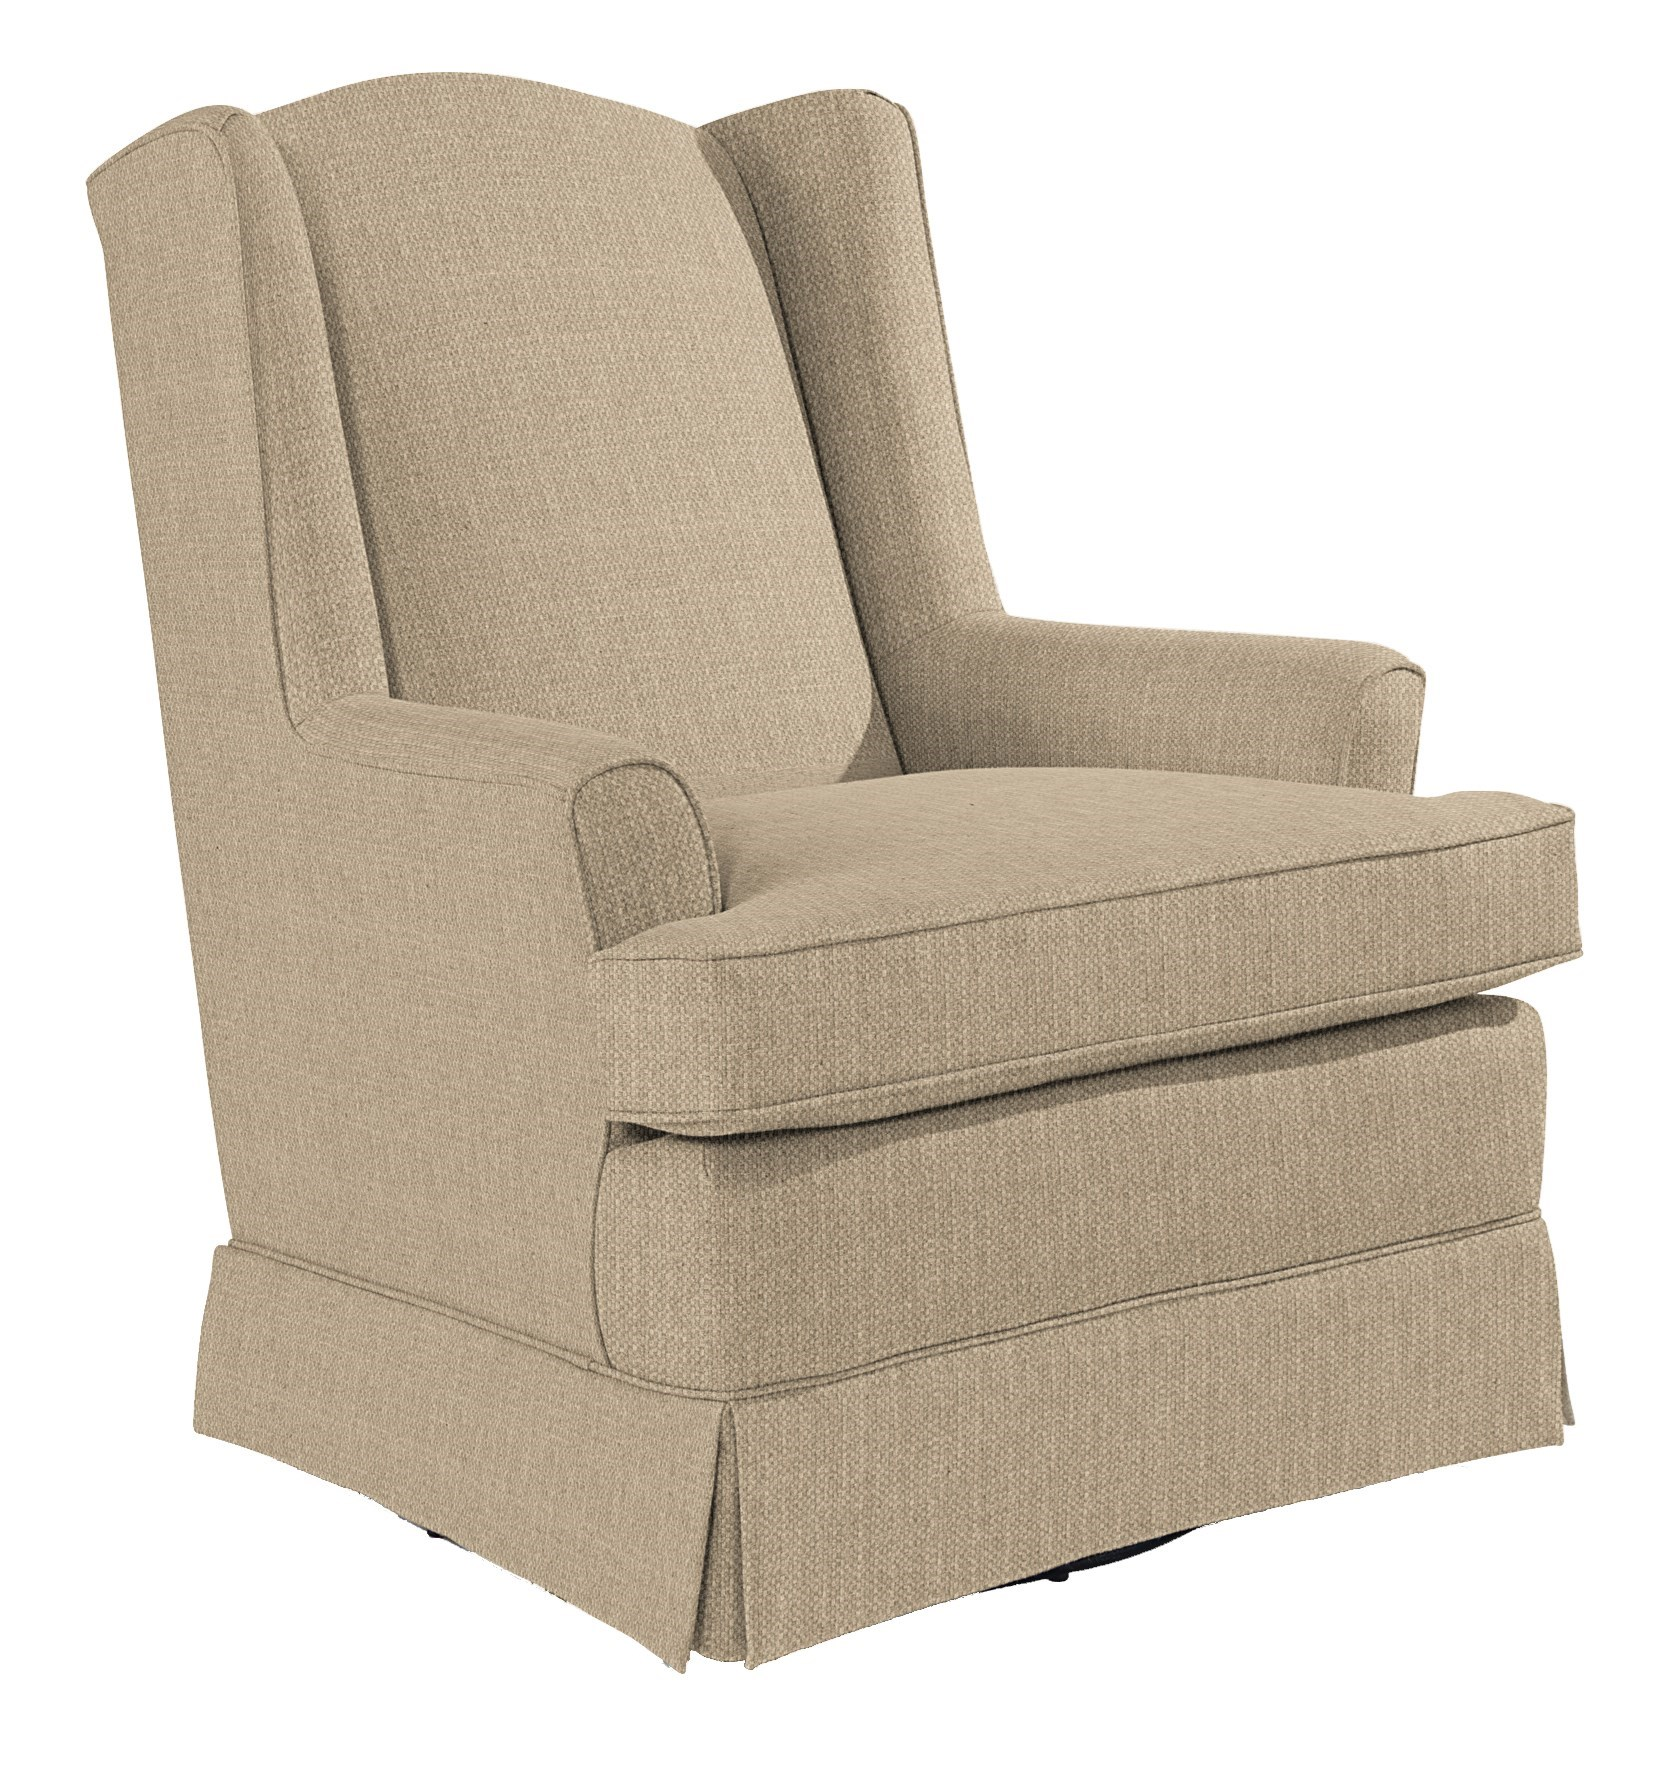 Best Home Furnishings Chairs Swivel Glide Natasha Swivel